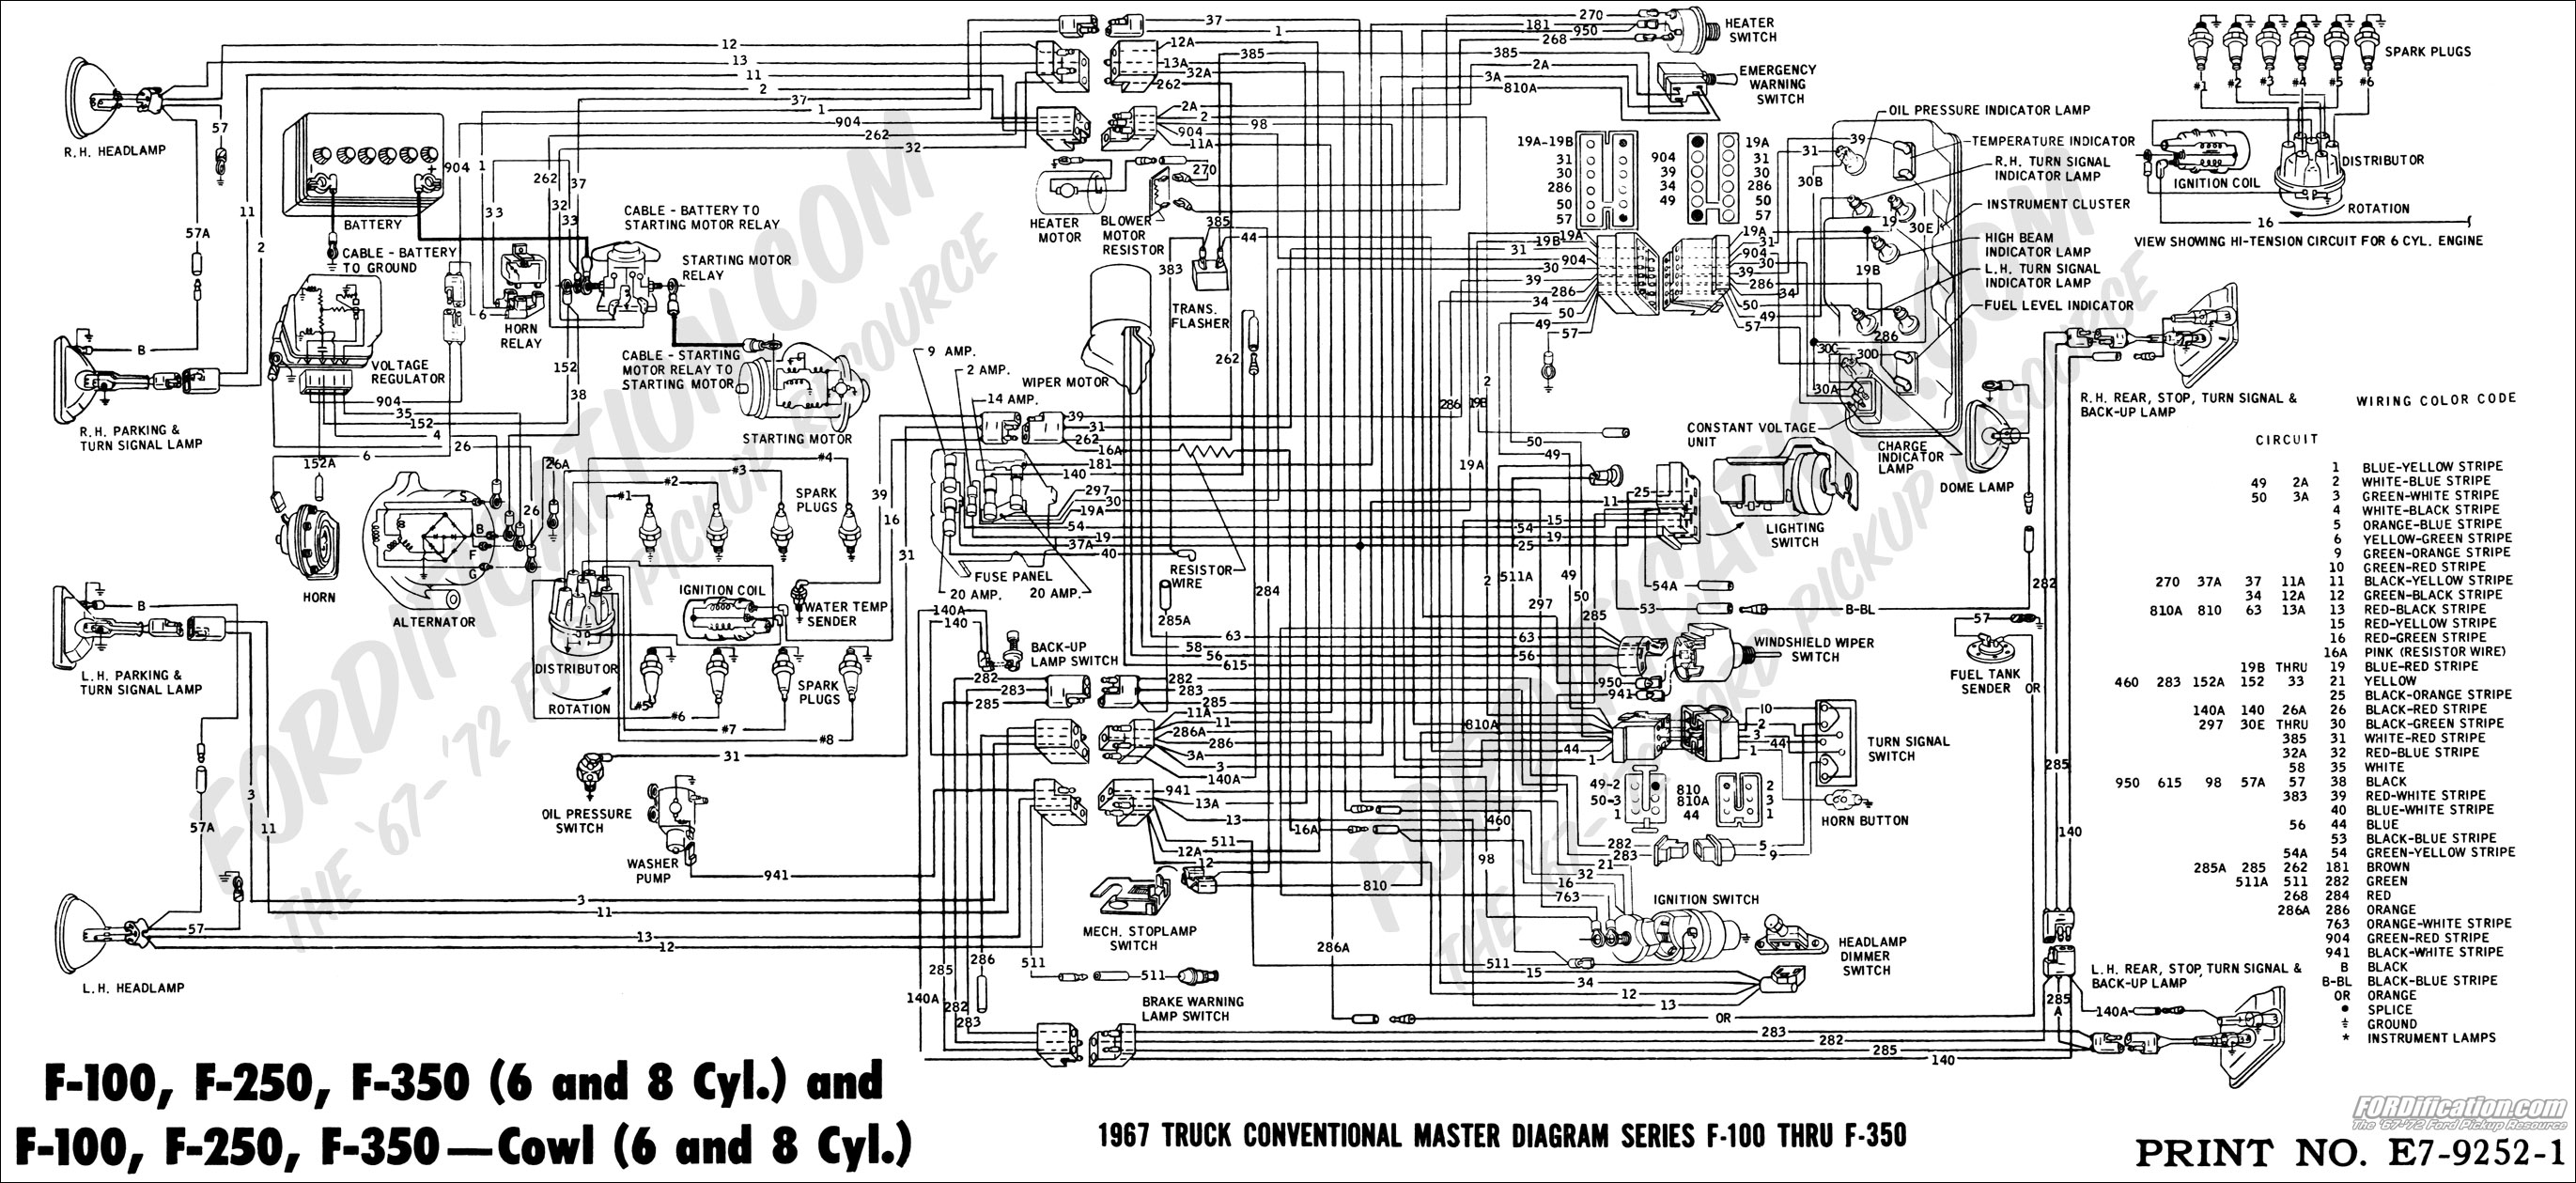 67masterdiagram ford truck technical drawings and schematics section h wiring ford f150 wiring harness diagram at n-0.co